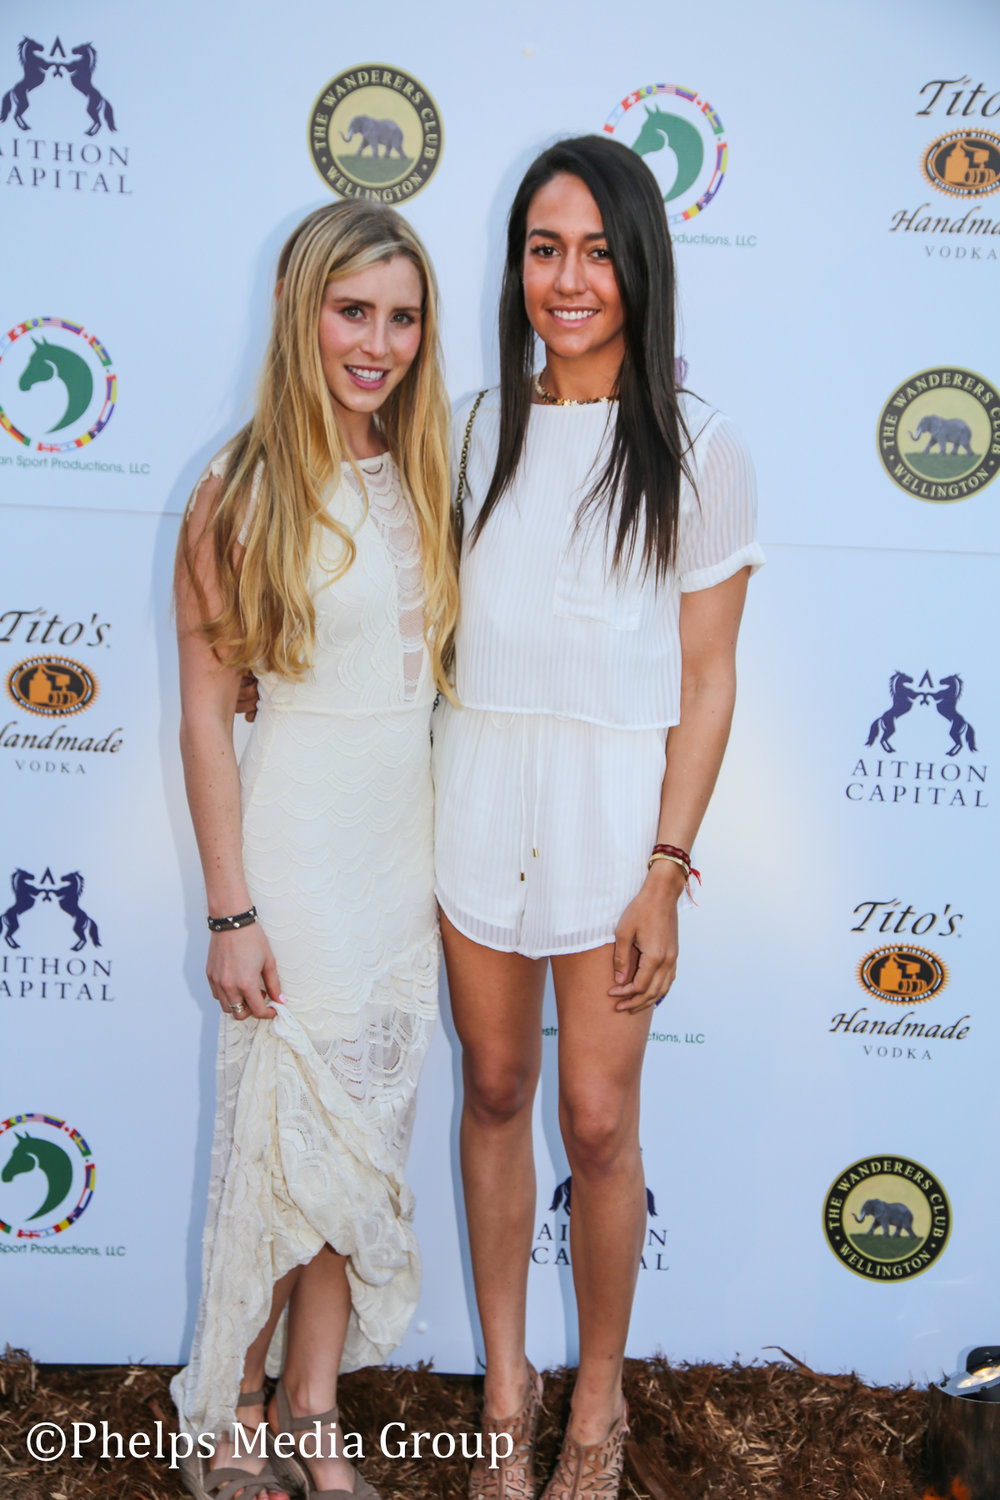 PaigeBellissmo and Lacey Gilbertson; Nic Roldan's 2nd Annual Sunset Polo & White Party, FL, by Phelps Media.jpg